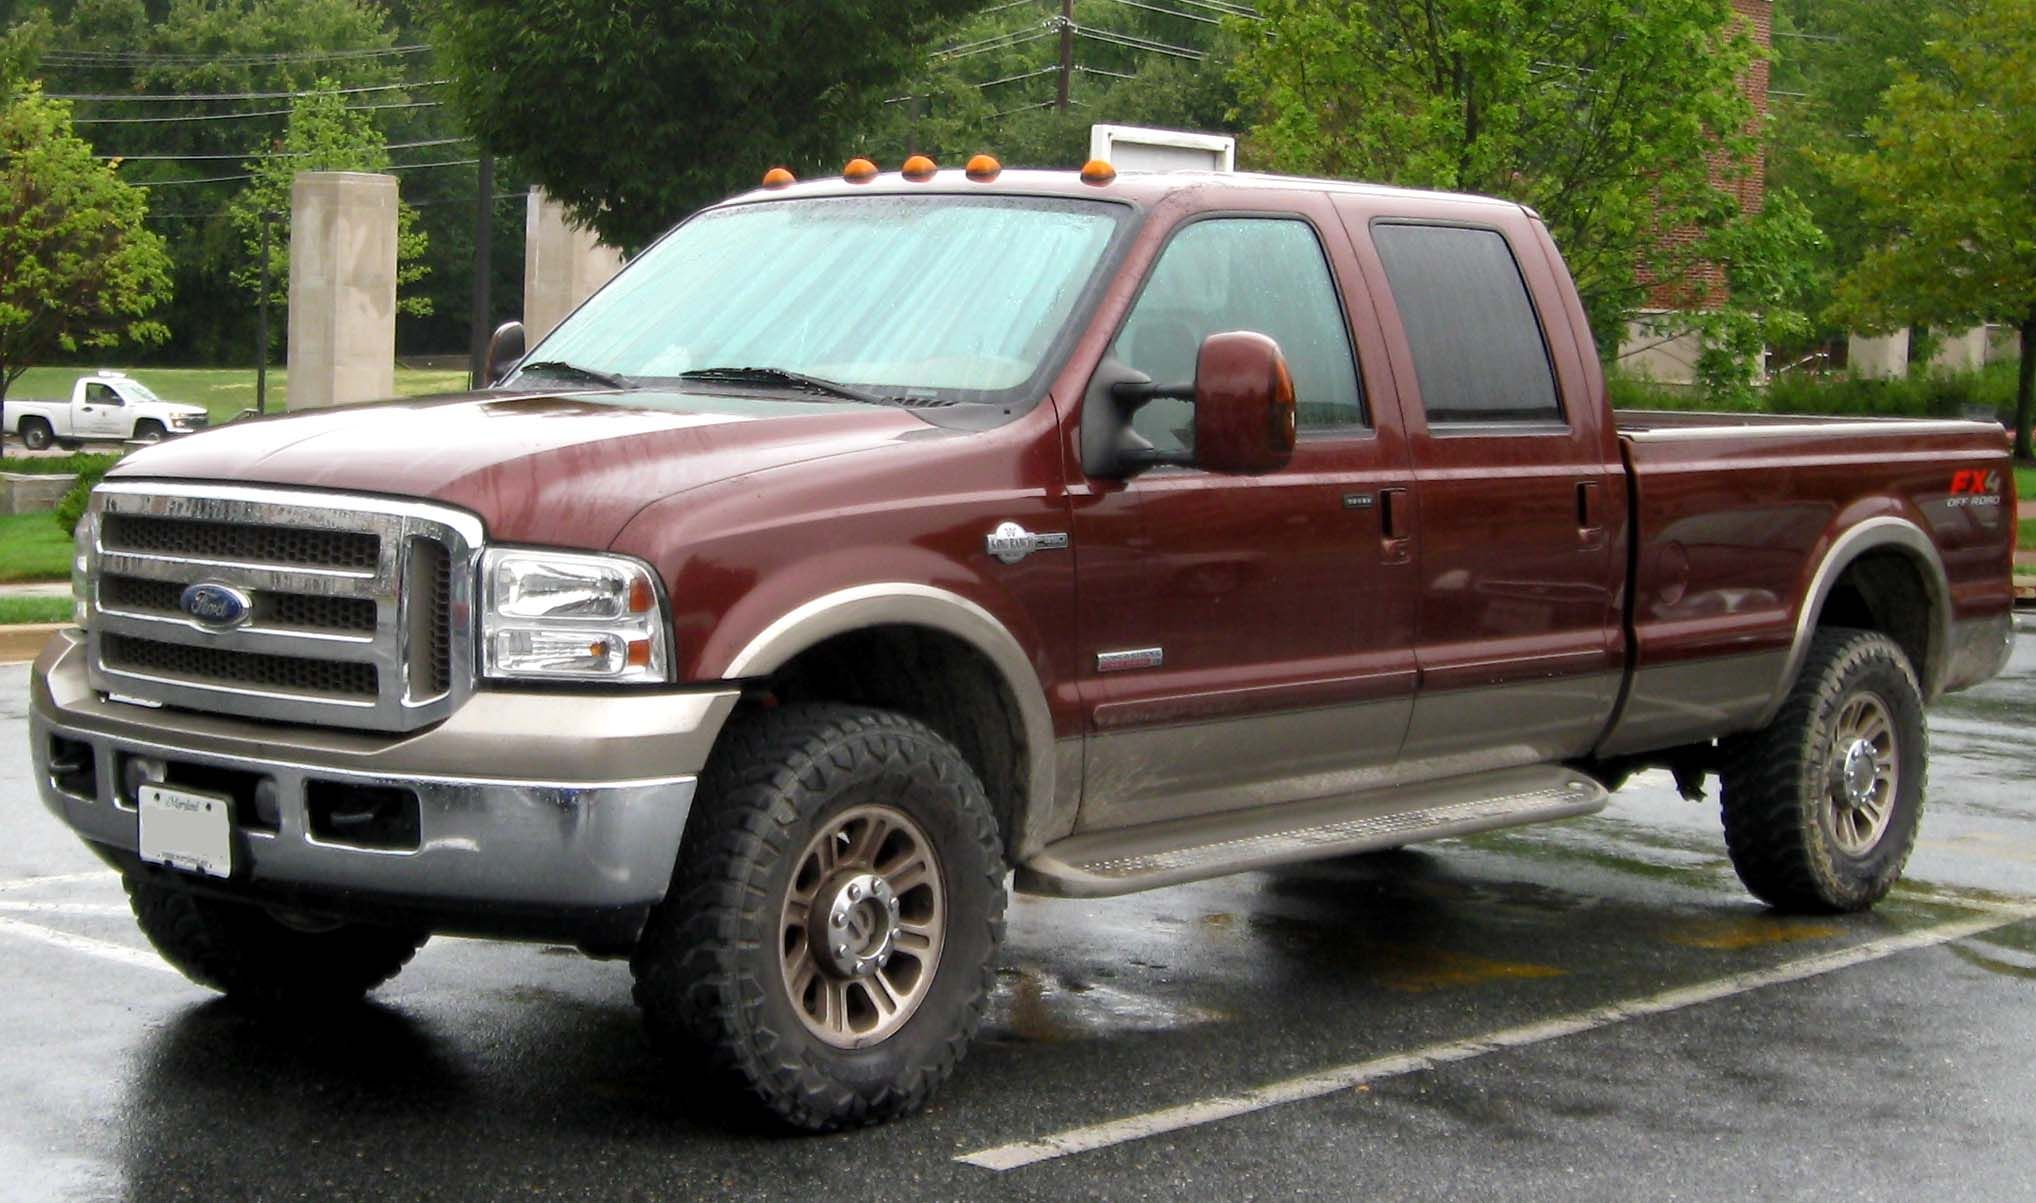 hight resolution of 2002 ford f250 v10 super cab mine was a teal blue with tinted windows this thing could pull a small town if you had a good enough chain 9mpg